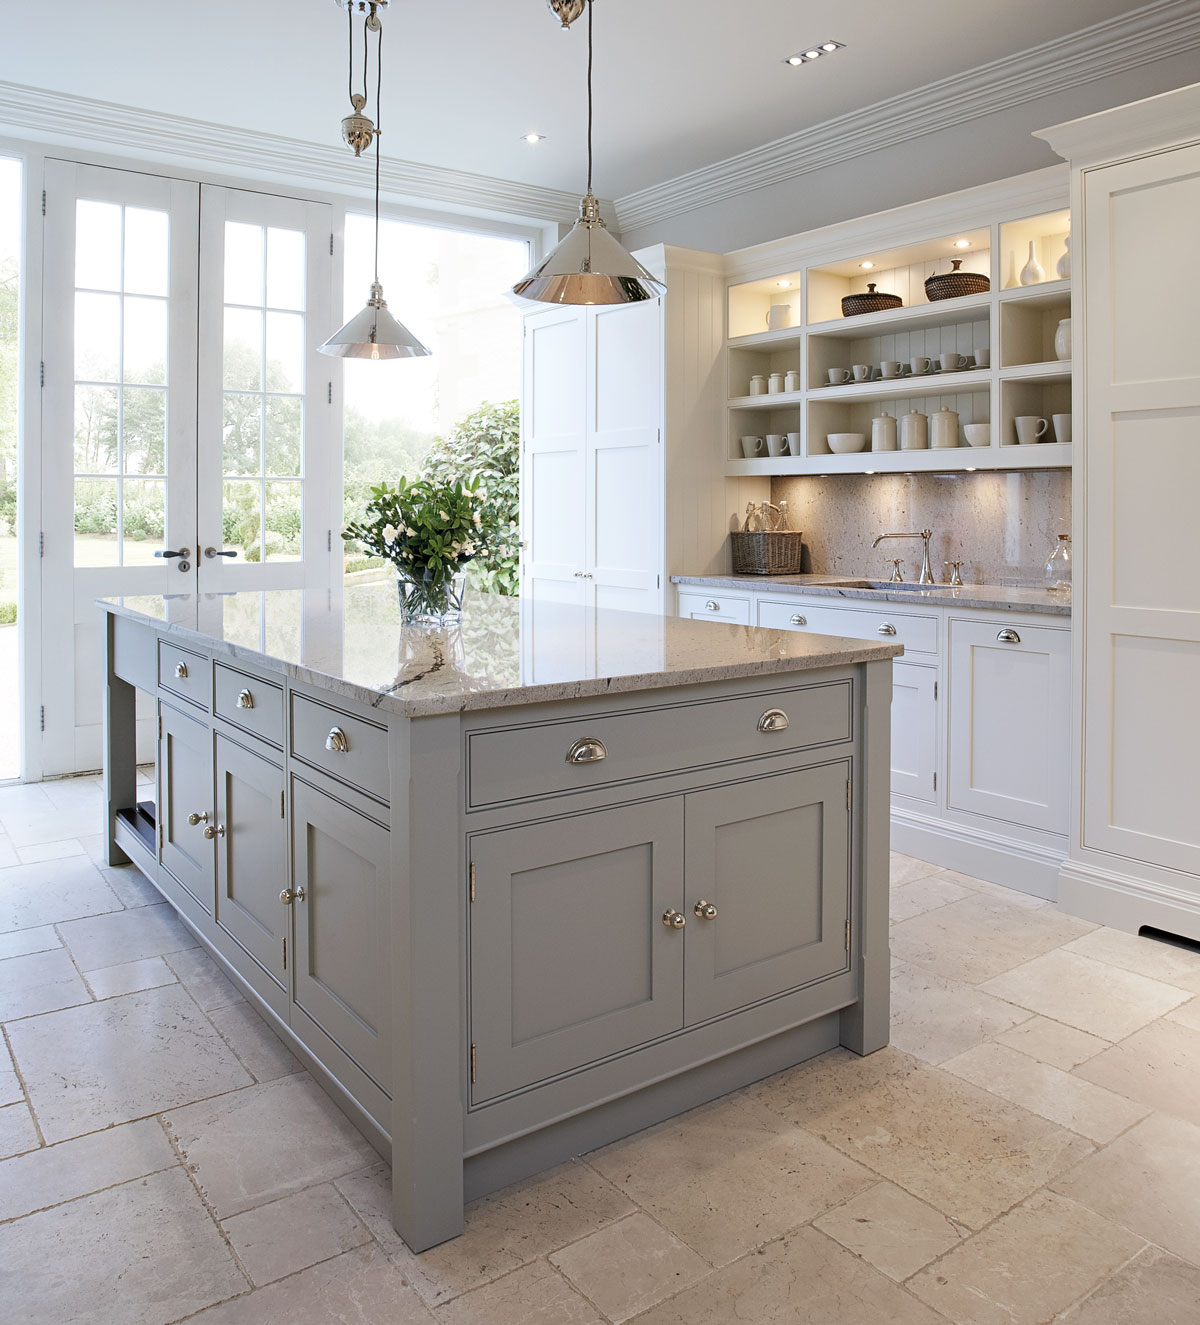 Our Talented Designers Will Work With You To Create The Perfect Island For  Your Kitchen, With All The Features You Desire. Kitchen Islands Can Be ...